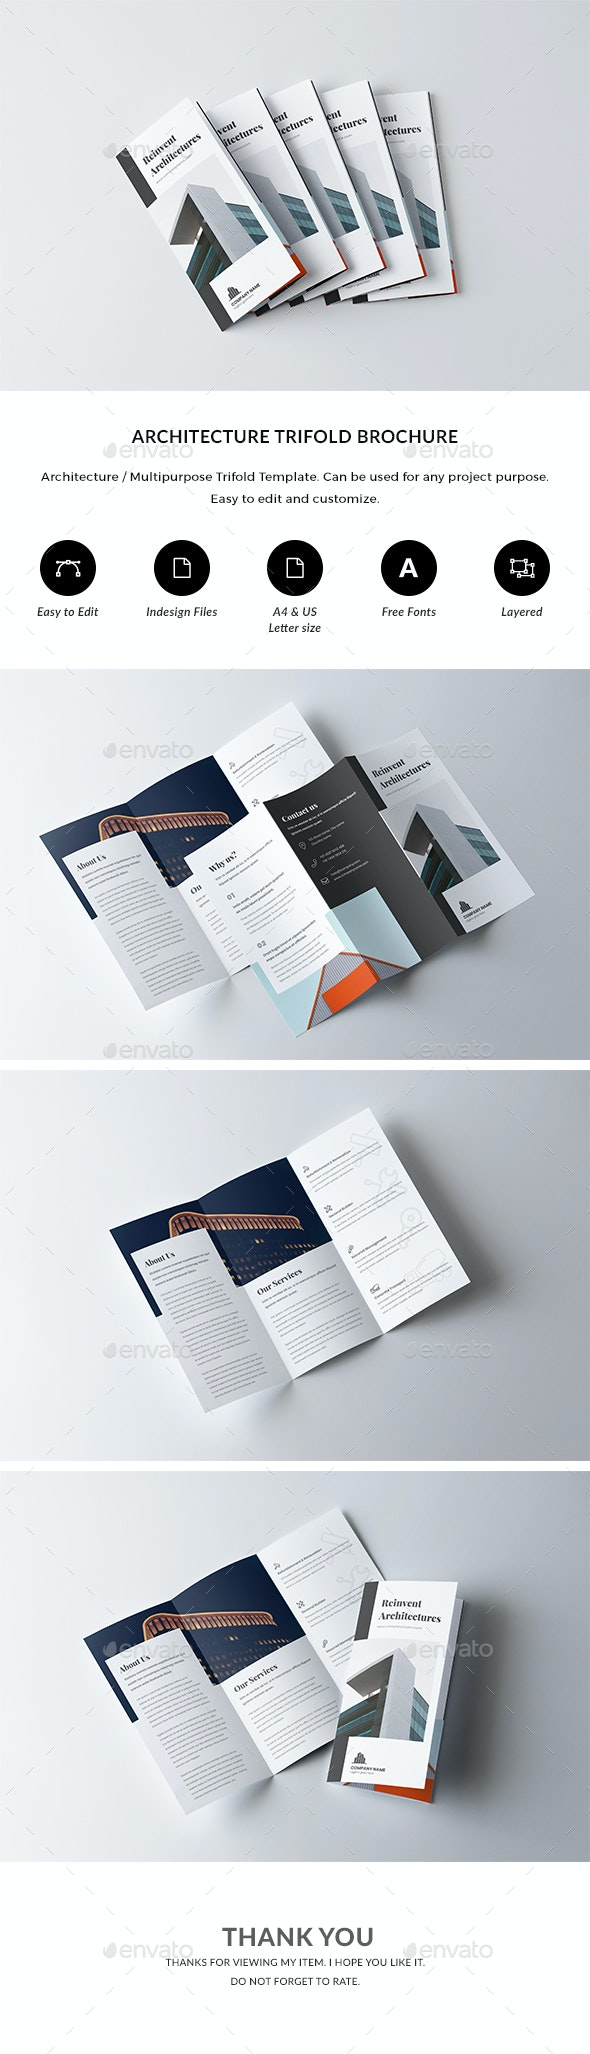 Architecture / Multipurpose Tri-fold Brochure Template - Corporate Brochures